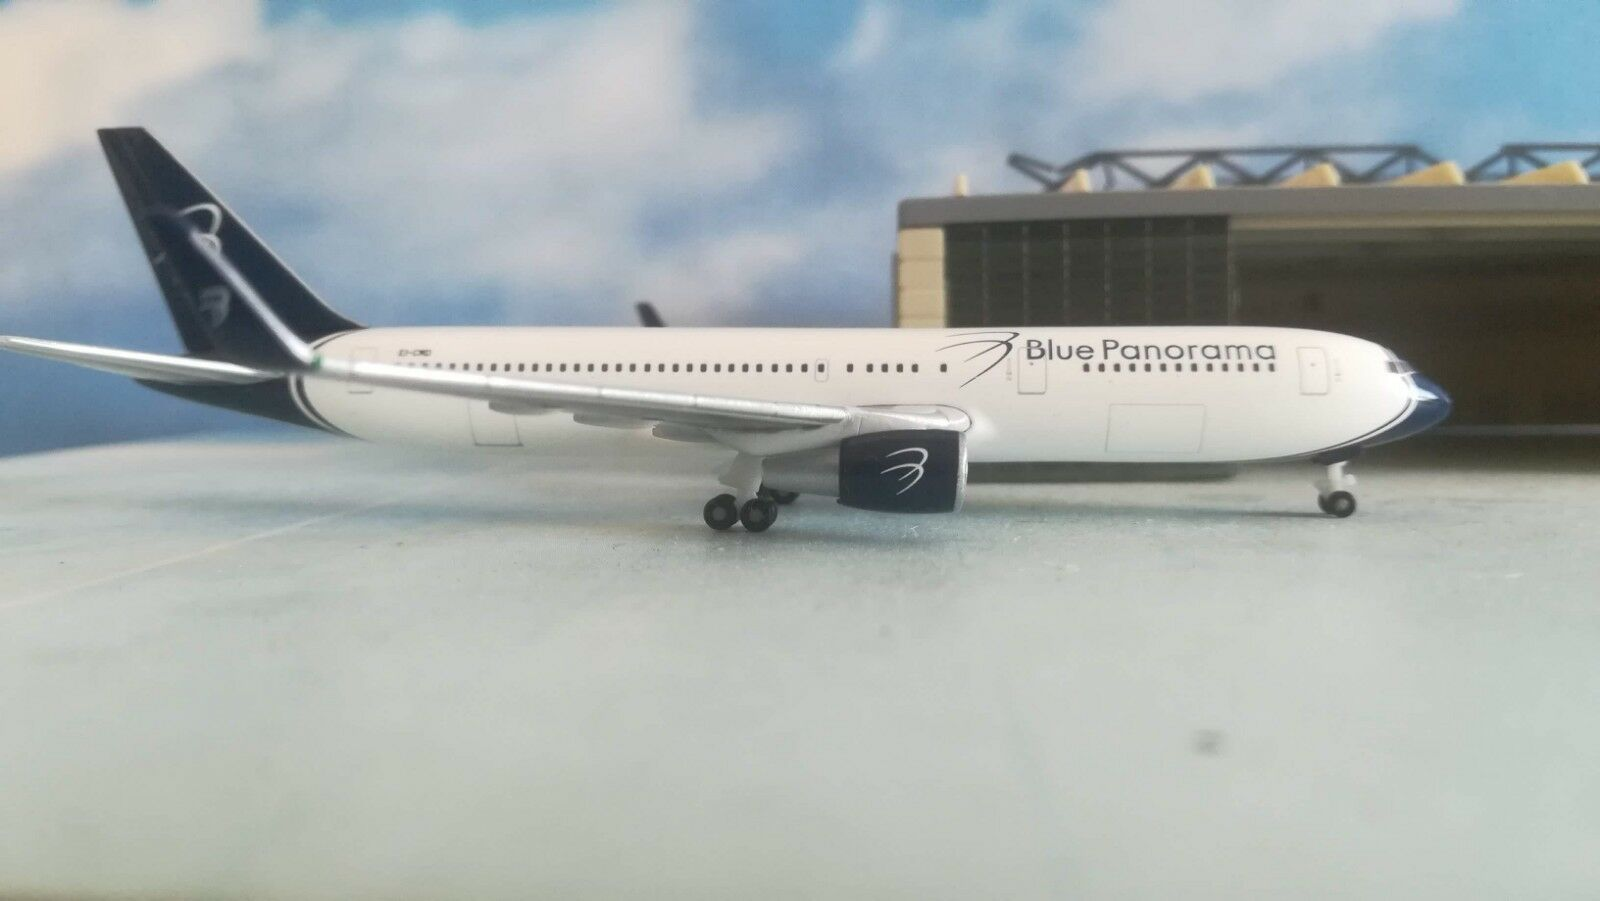 531559  Blau Panorama Boeing 767-300 767-300 767-300 città di Milano Herpa Wings 1 500  | New Product 2019